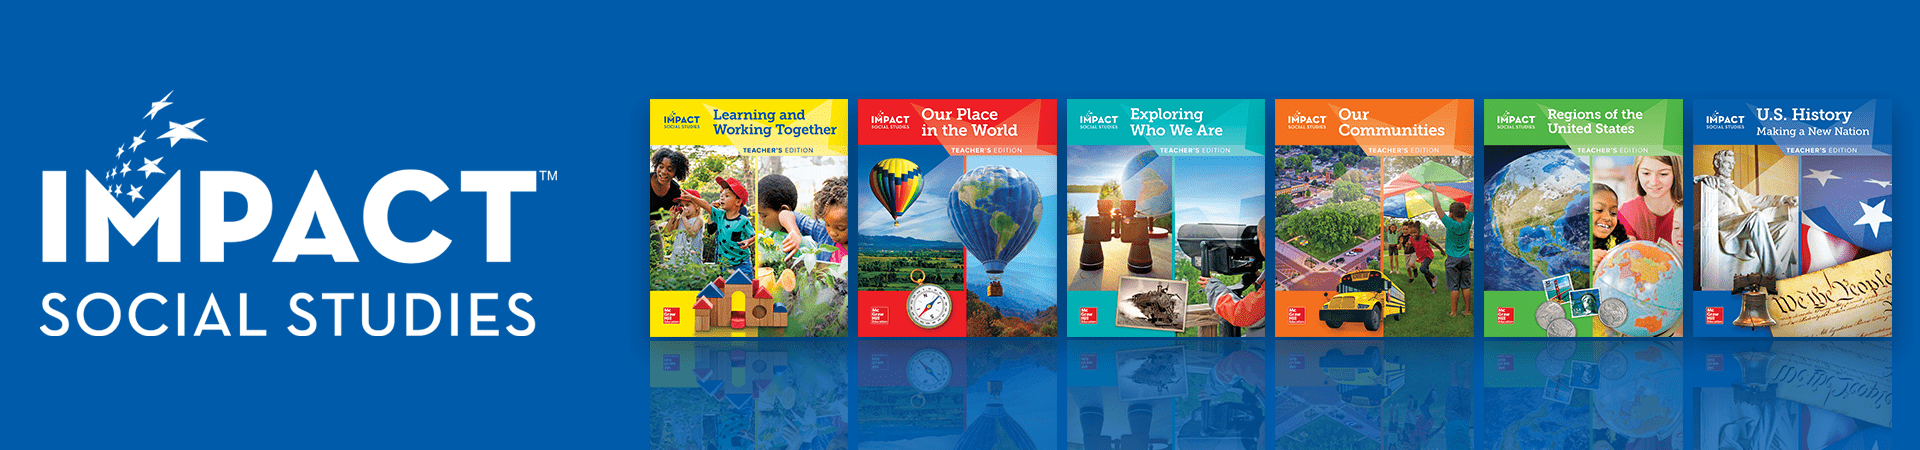 logo and textbook covers for impact elementary social studies curriculum